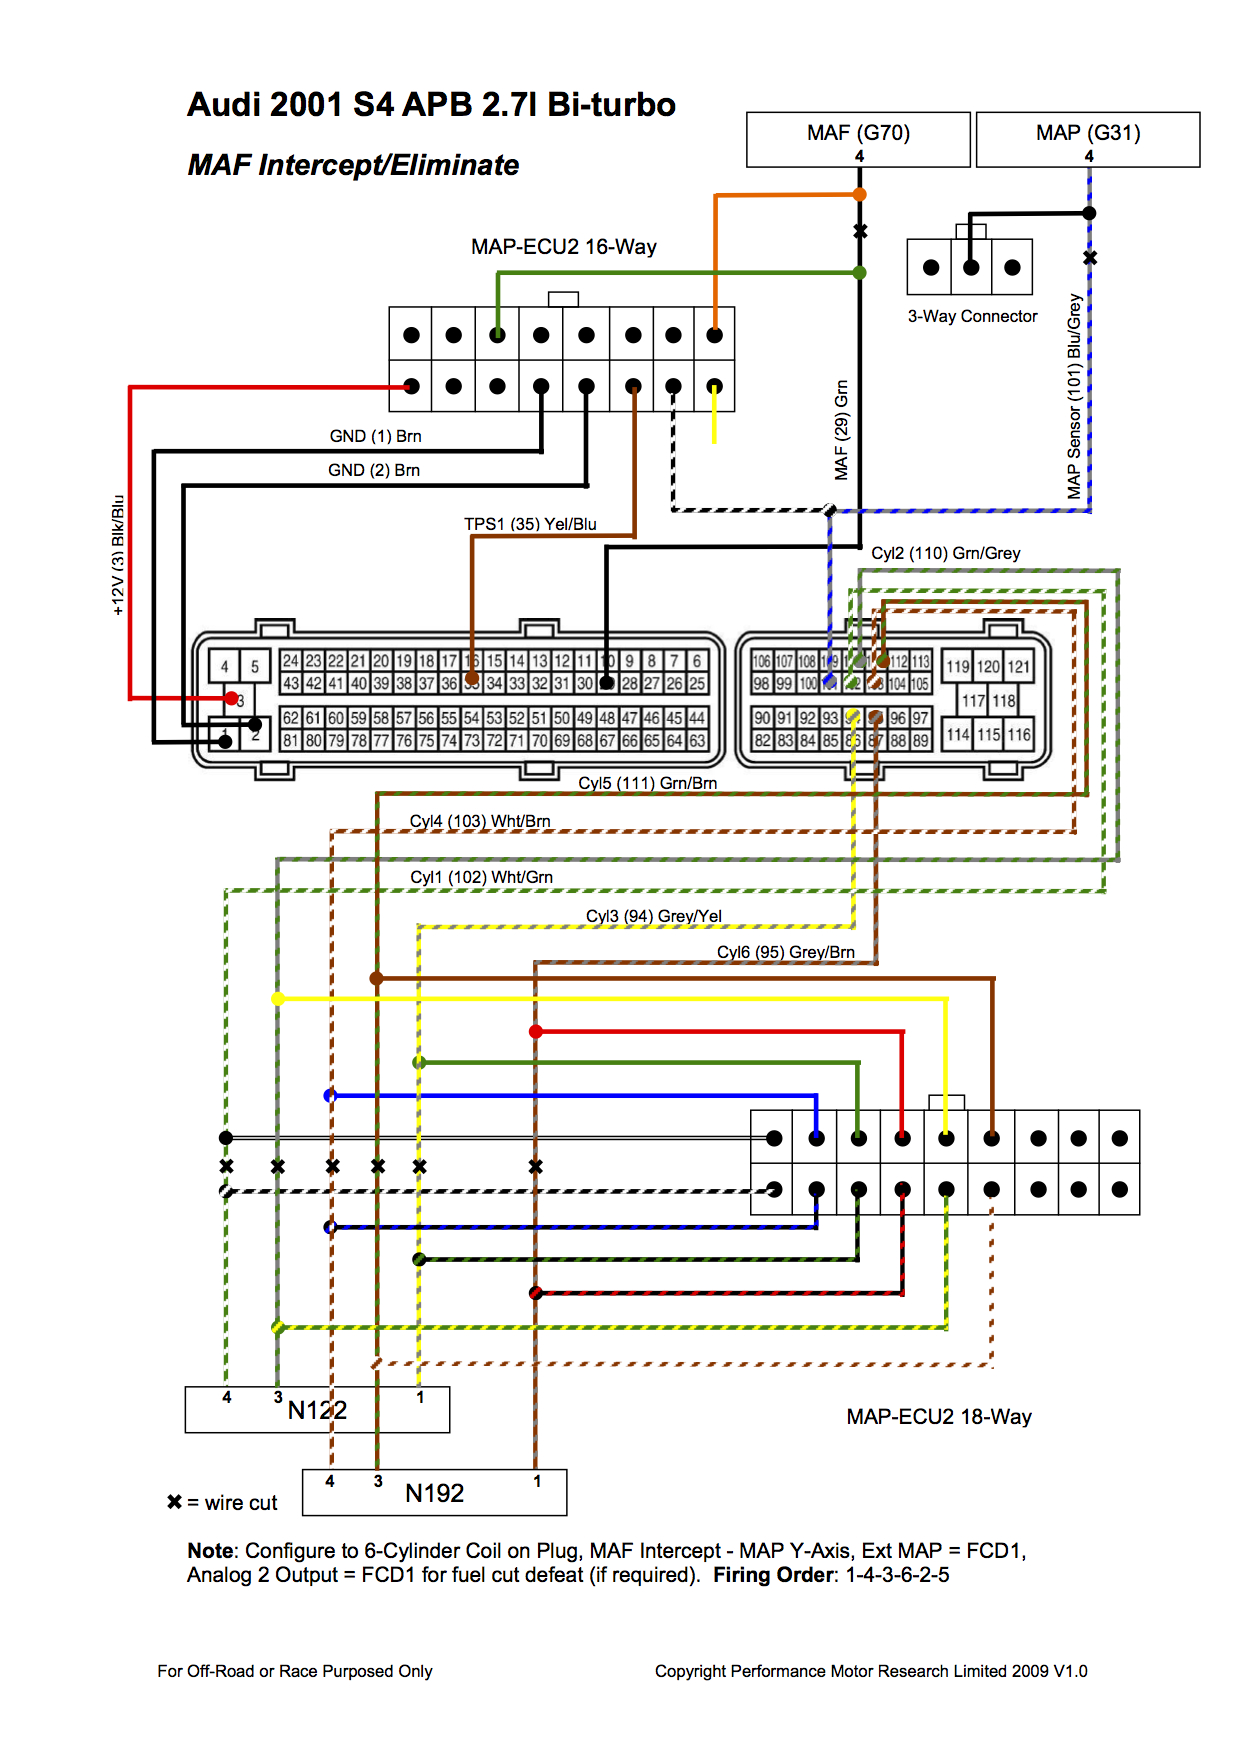 Audi S4 20011 ecu wiring diagram paccar ecu wiring diagram \u2022 wiring diagrams j honda wave 100 wiring diagram pdf at cos-gaming.co